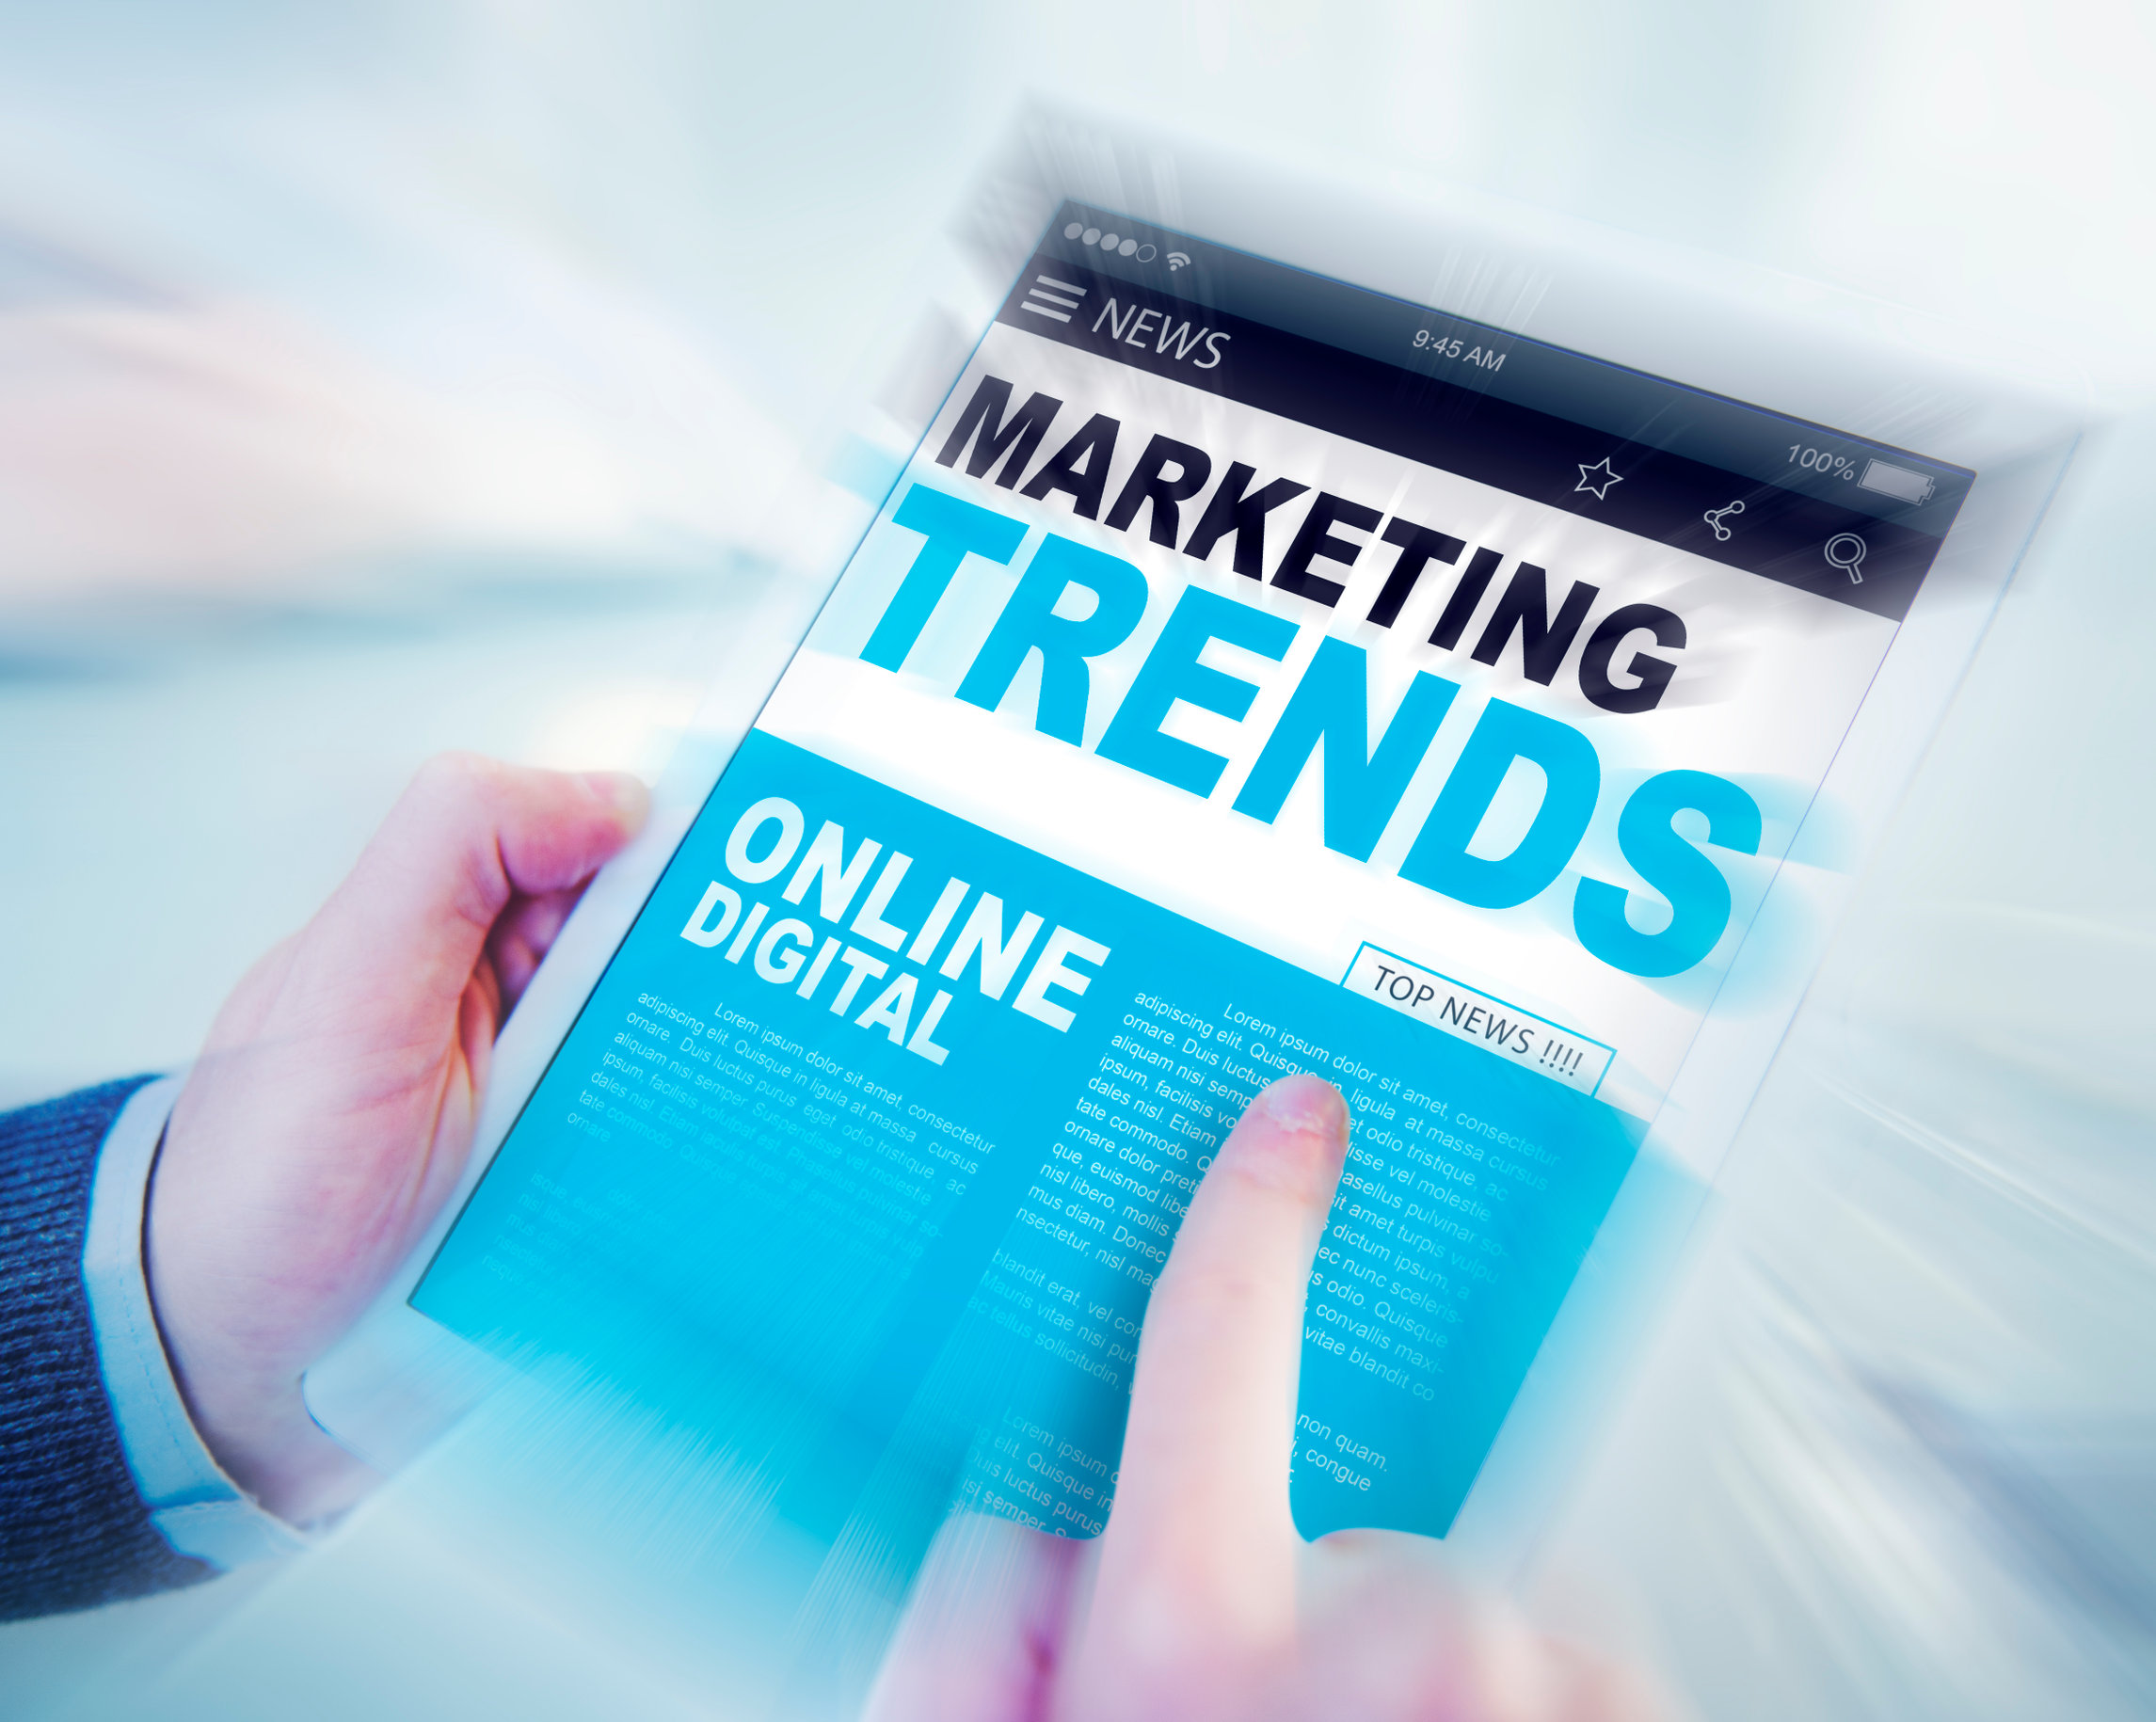 Top Marketing Trends - How to Successfully Navigate Digital Marketing